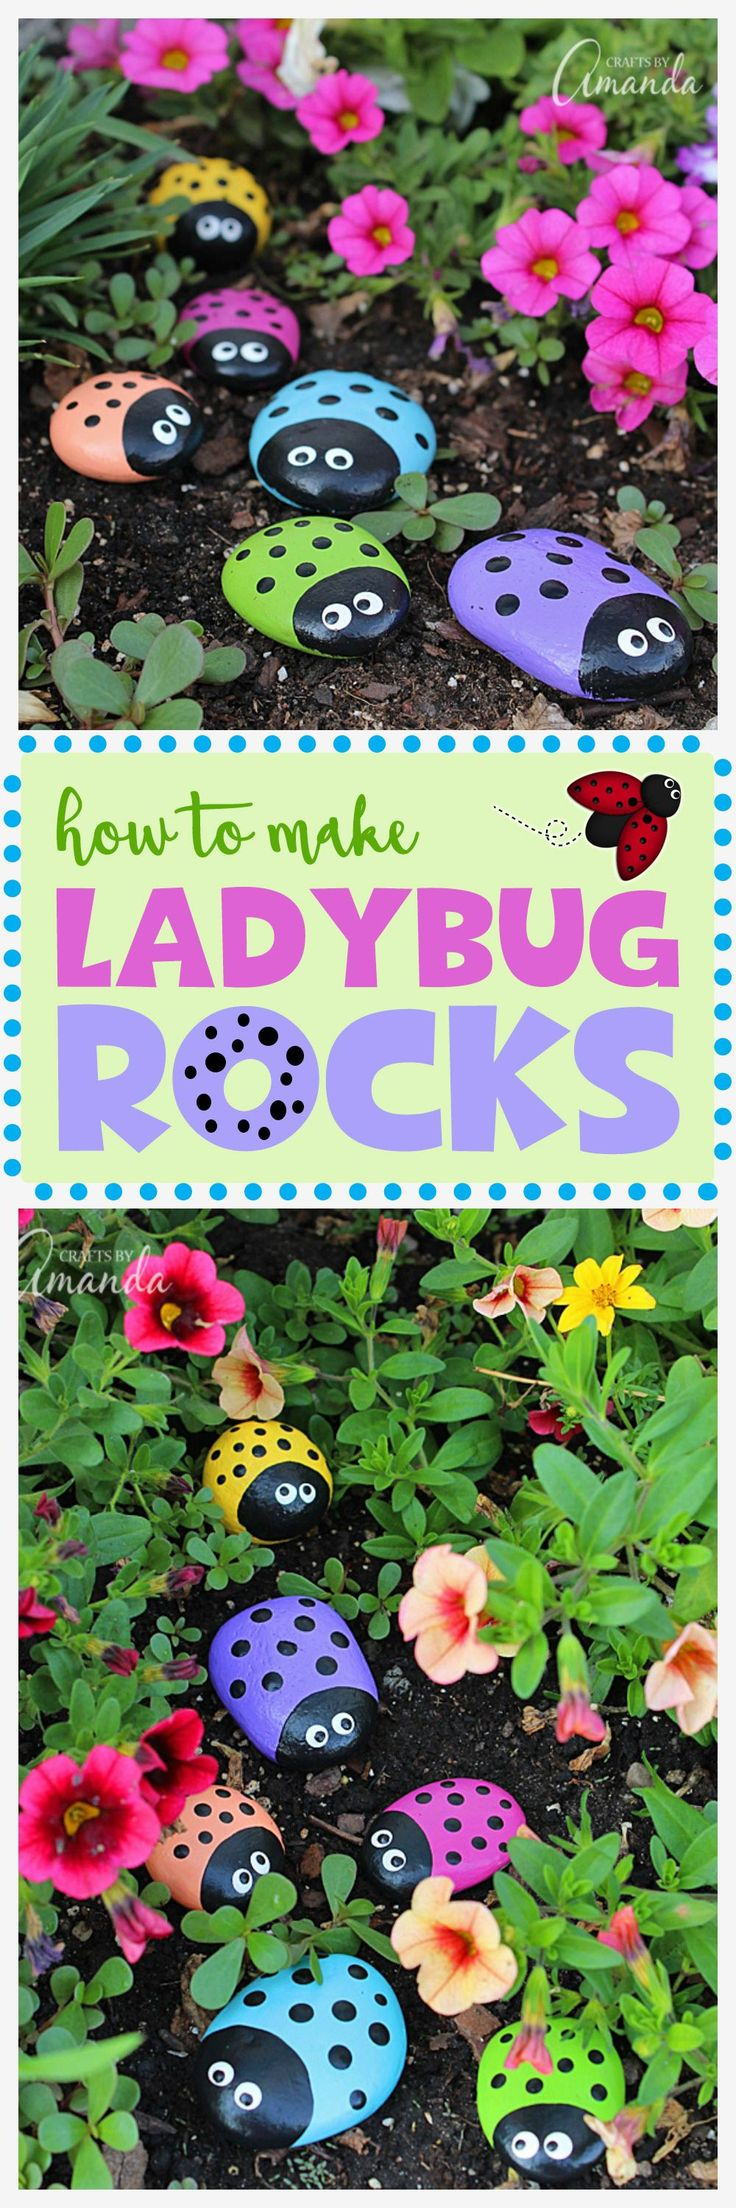 Learn to make these adorable ladybug painted rocks. use special outdoor paint for this adorable garden craft so you can keep garden ladybugs all summer! #kidscrafts